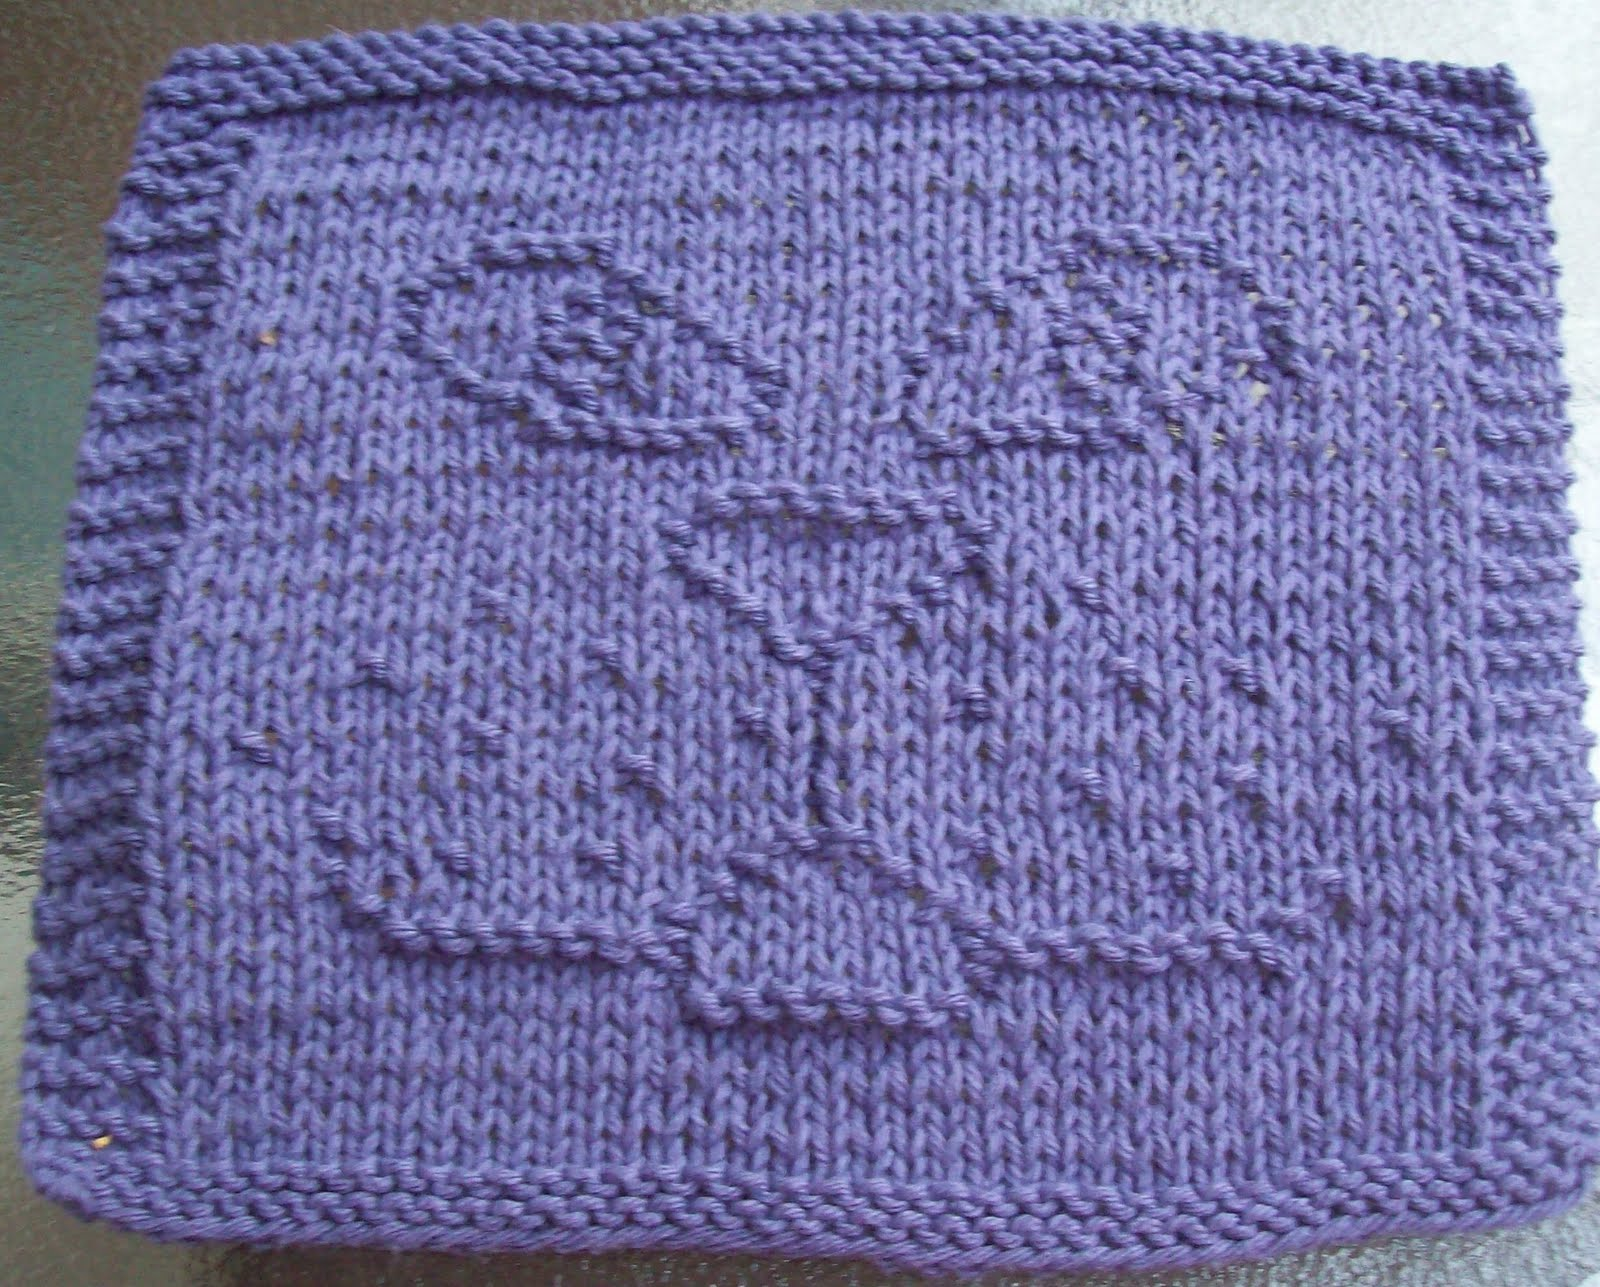 Dish Cloth Knitting Pattern : DigKnitty Designs: Cat Face Knit Dishcloth Pattern